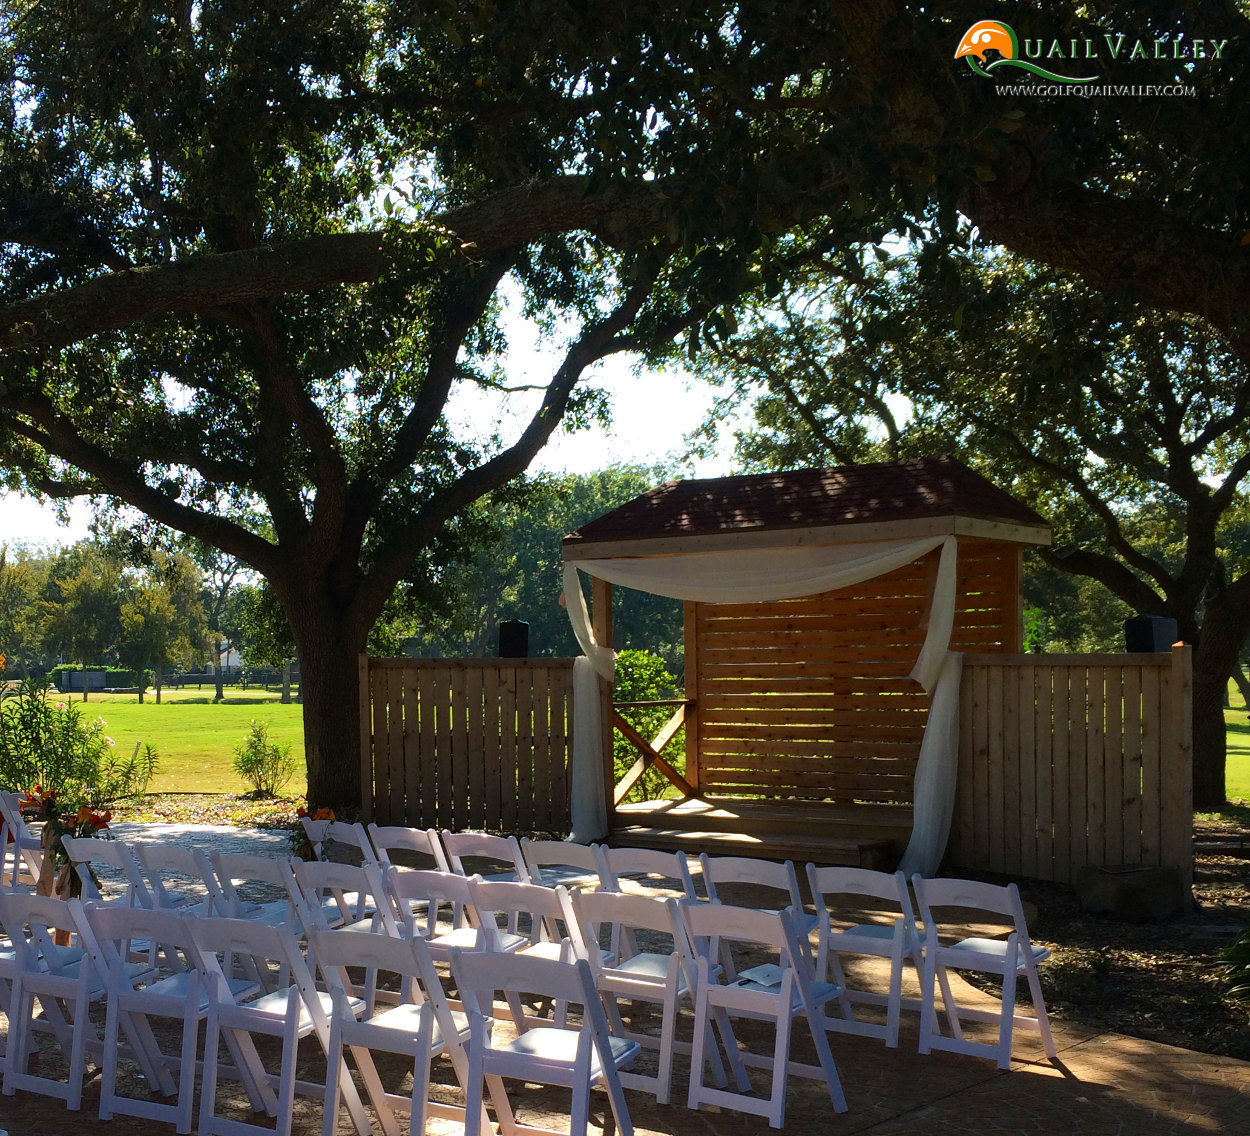 Get Prices Venues Tx: The Beautiful Wedding Venue At Quail Valley In Houston, TX